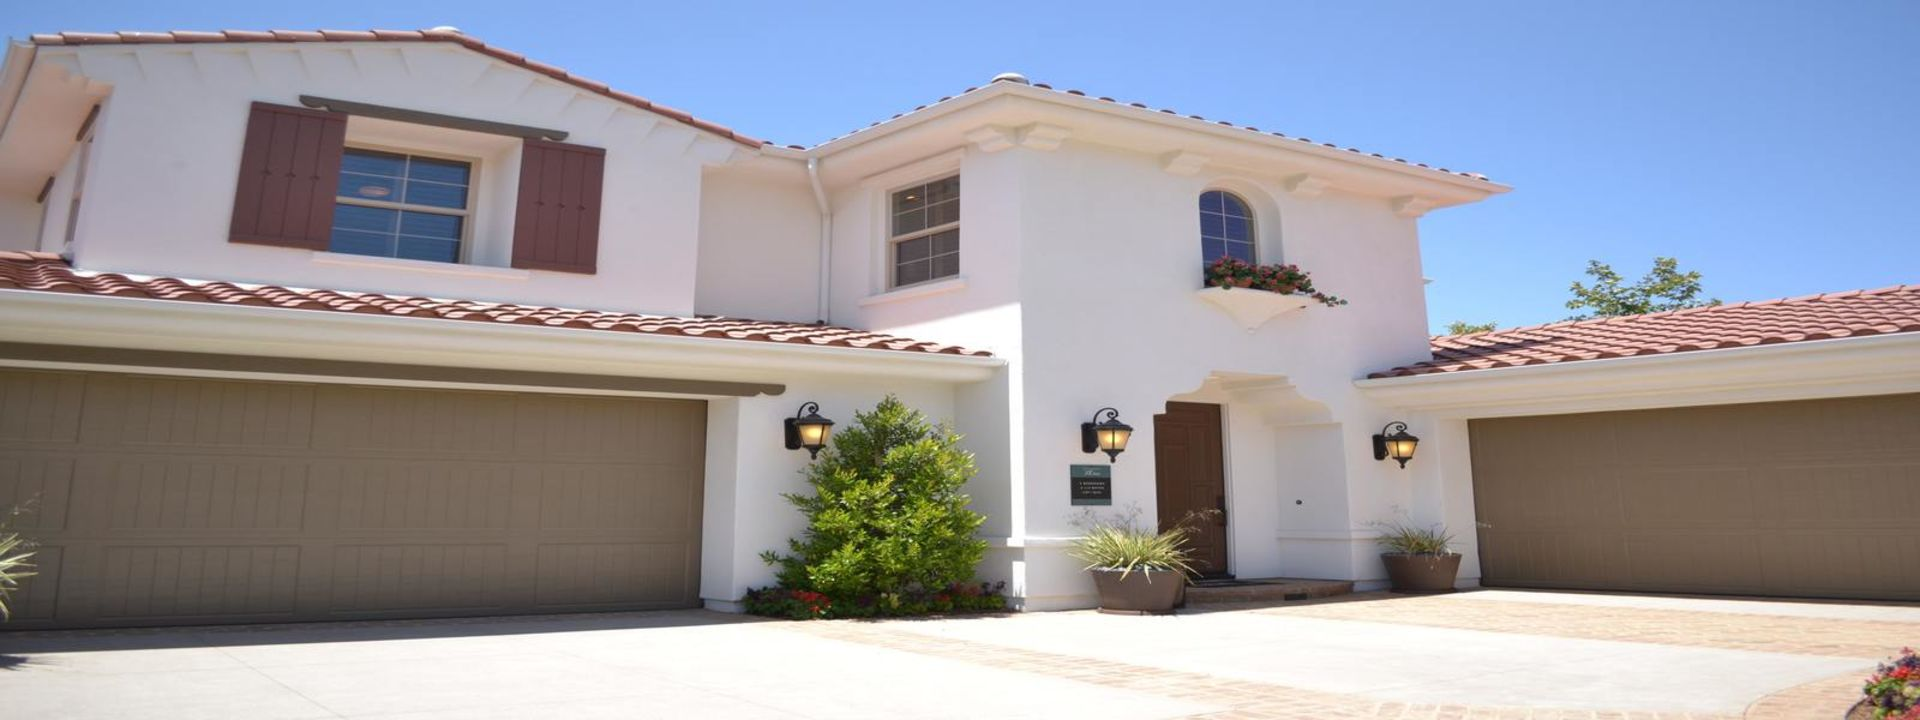 Rainberry Bay Homes for sale in Delray Beach